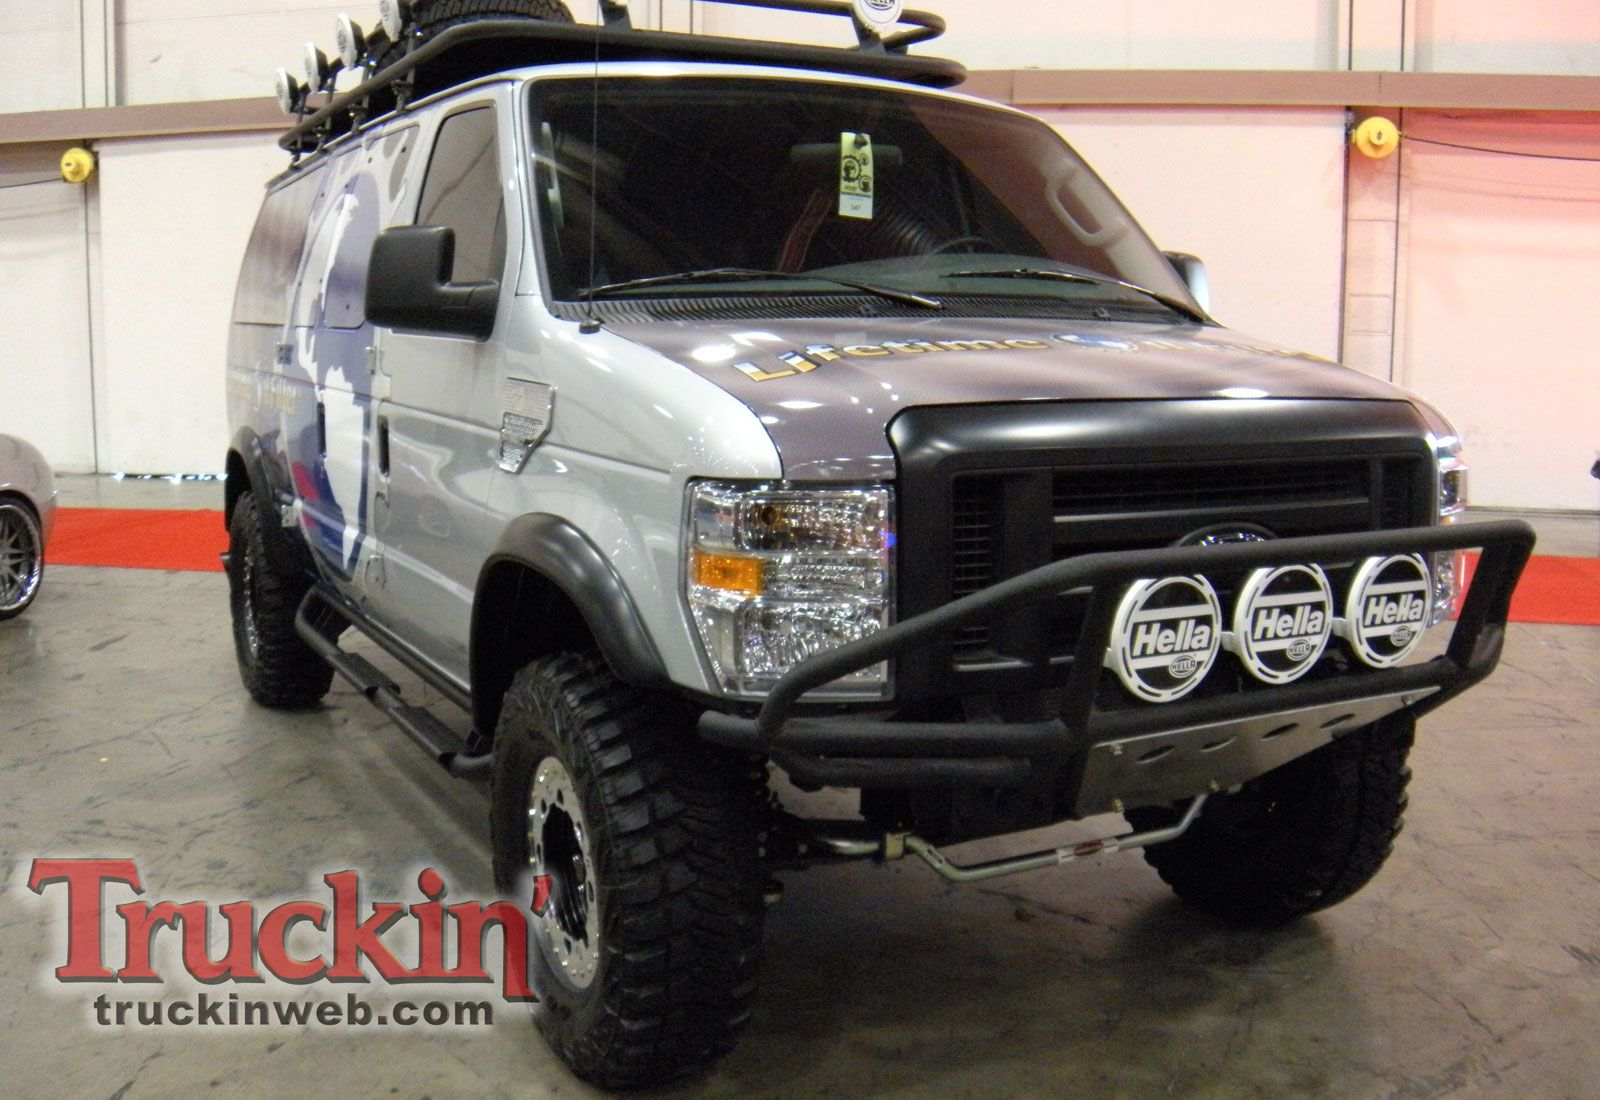 4x4 offroad van texas sportsmobile does anyone have one back